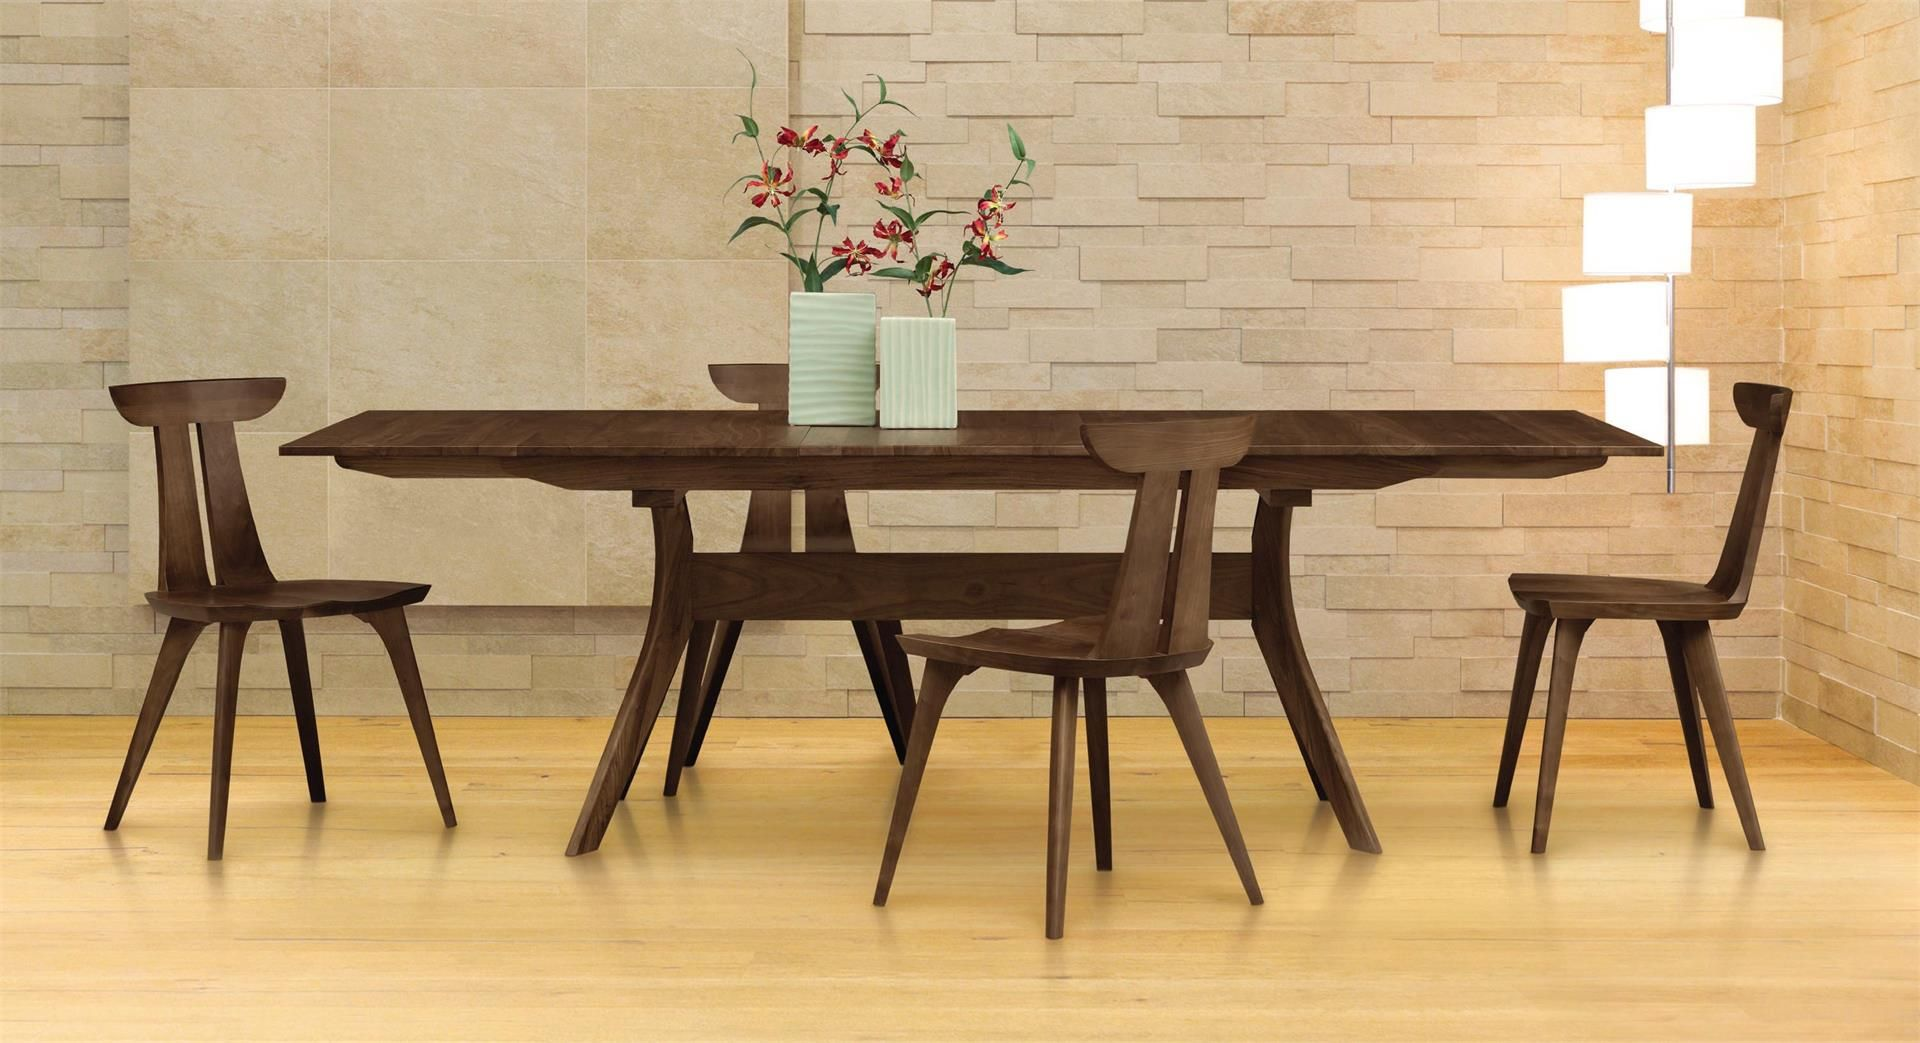 Copeland furniture audrey extension dining table